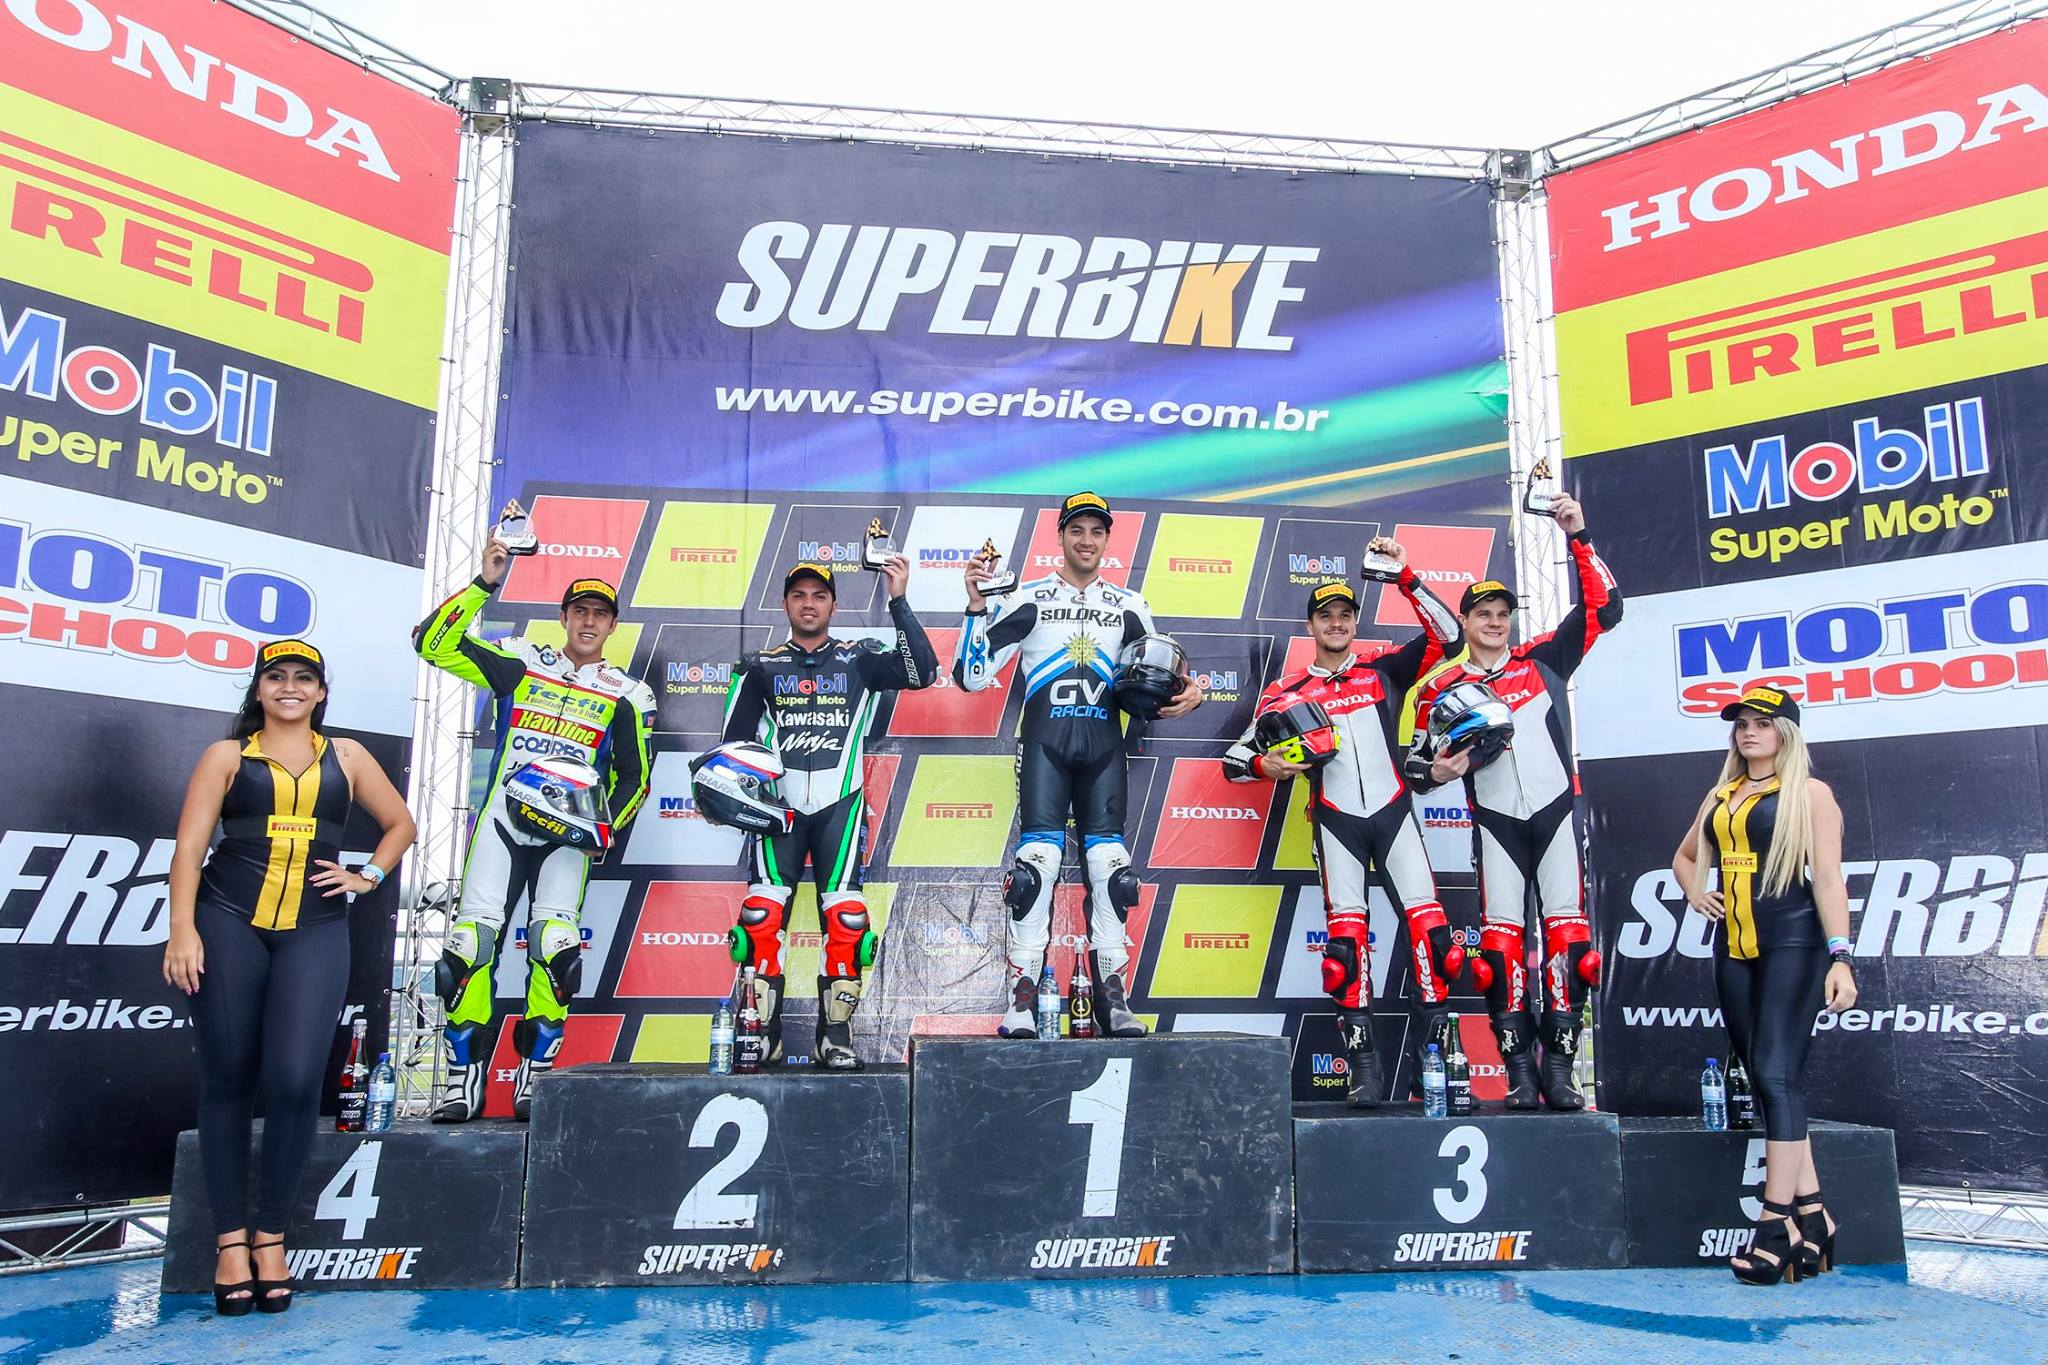 Marco Solorza 1º colocado na categoria Superbike Pro